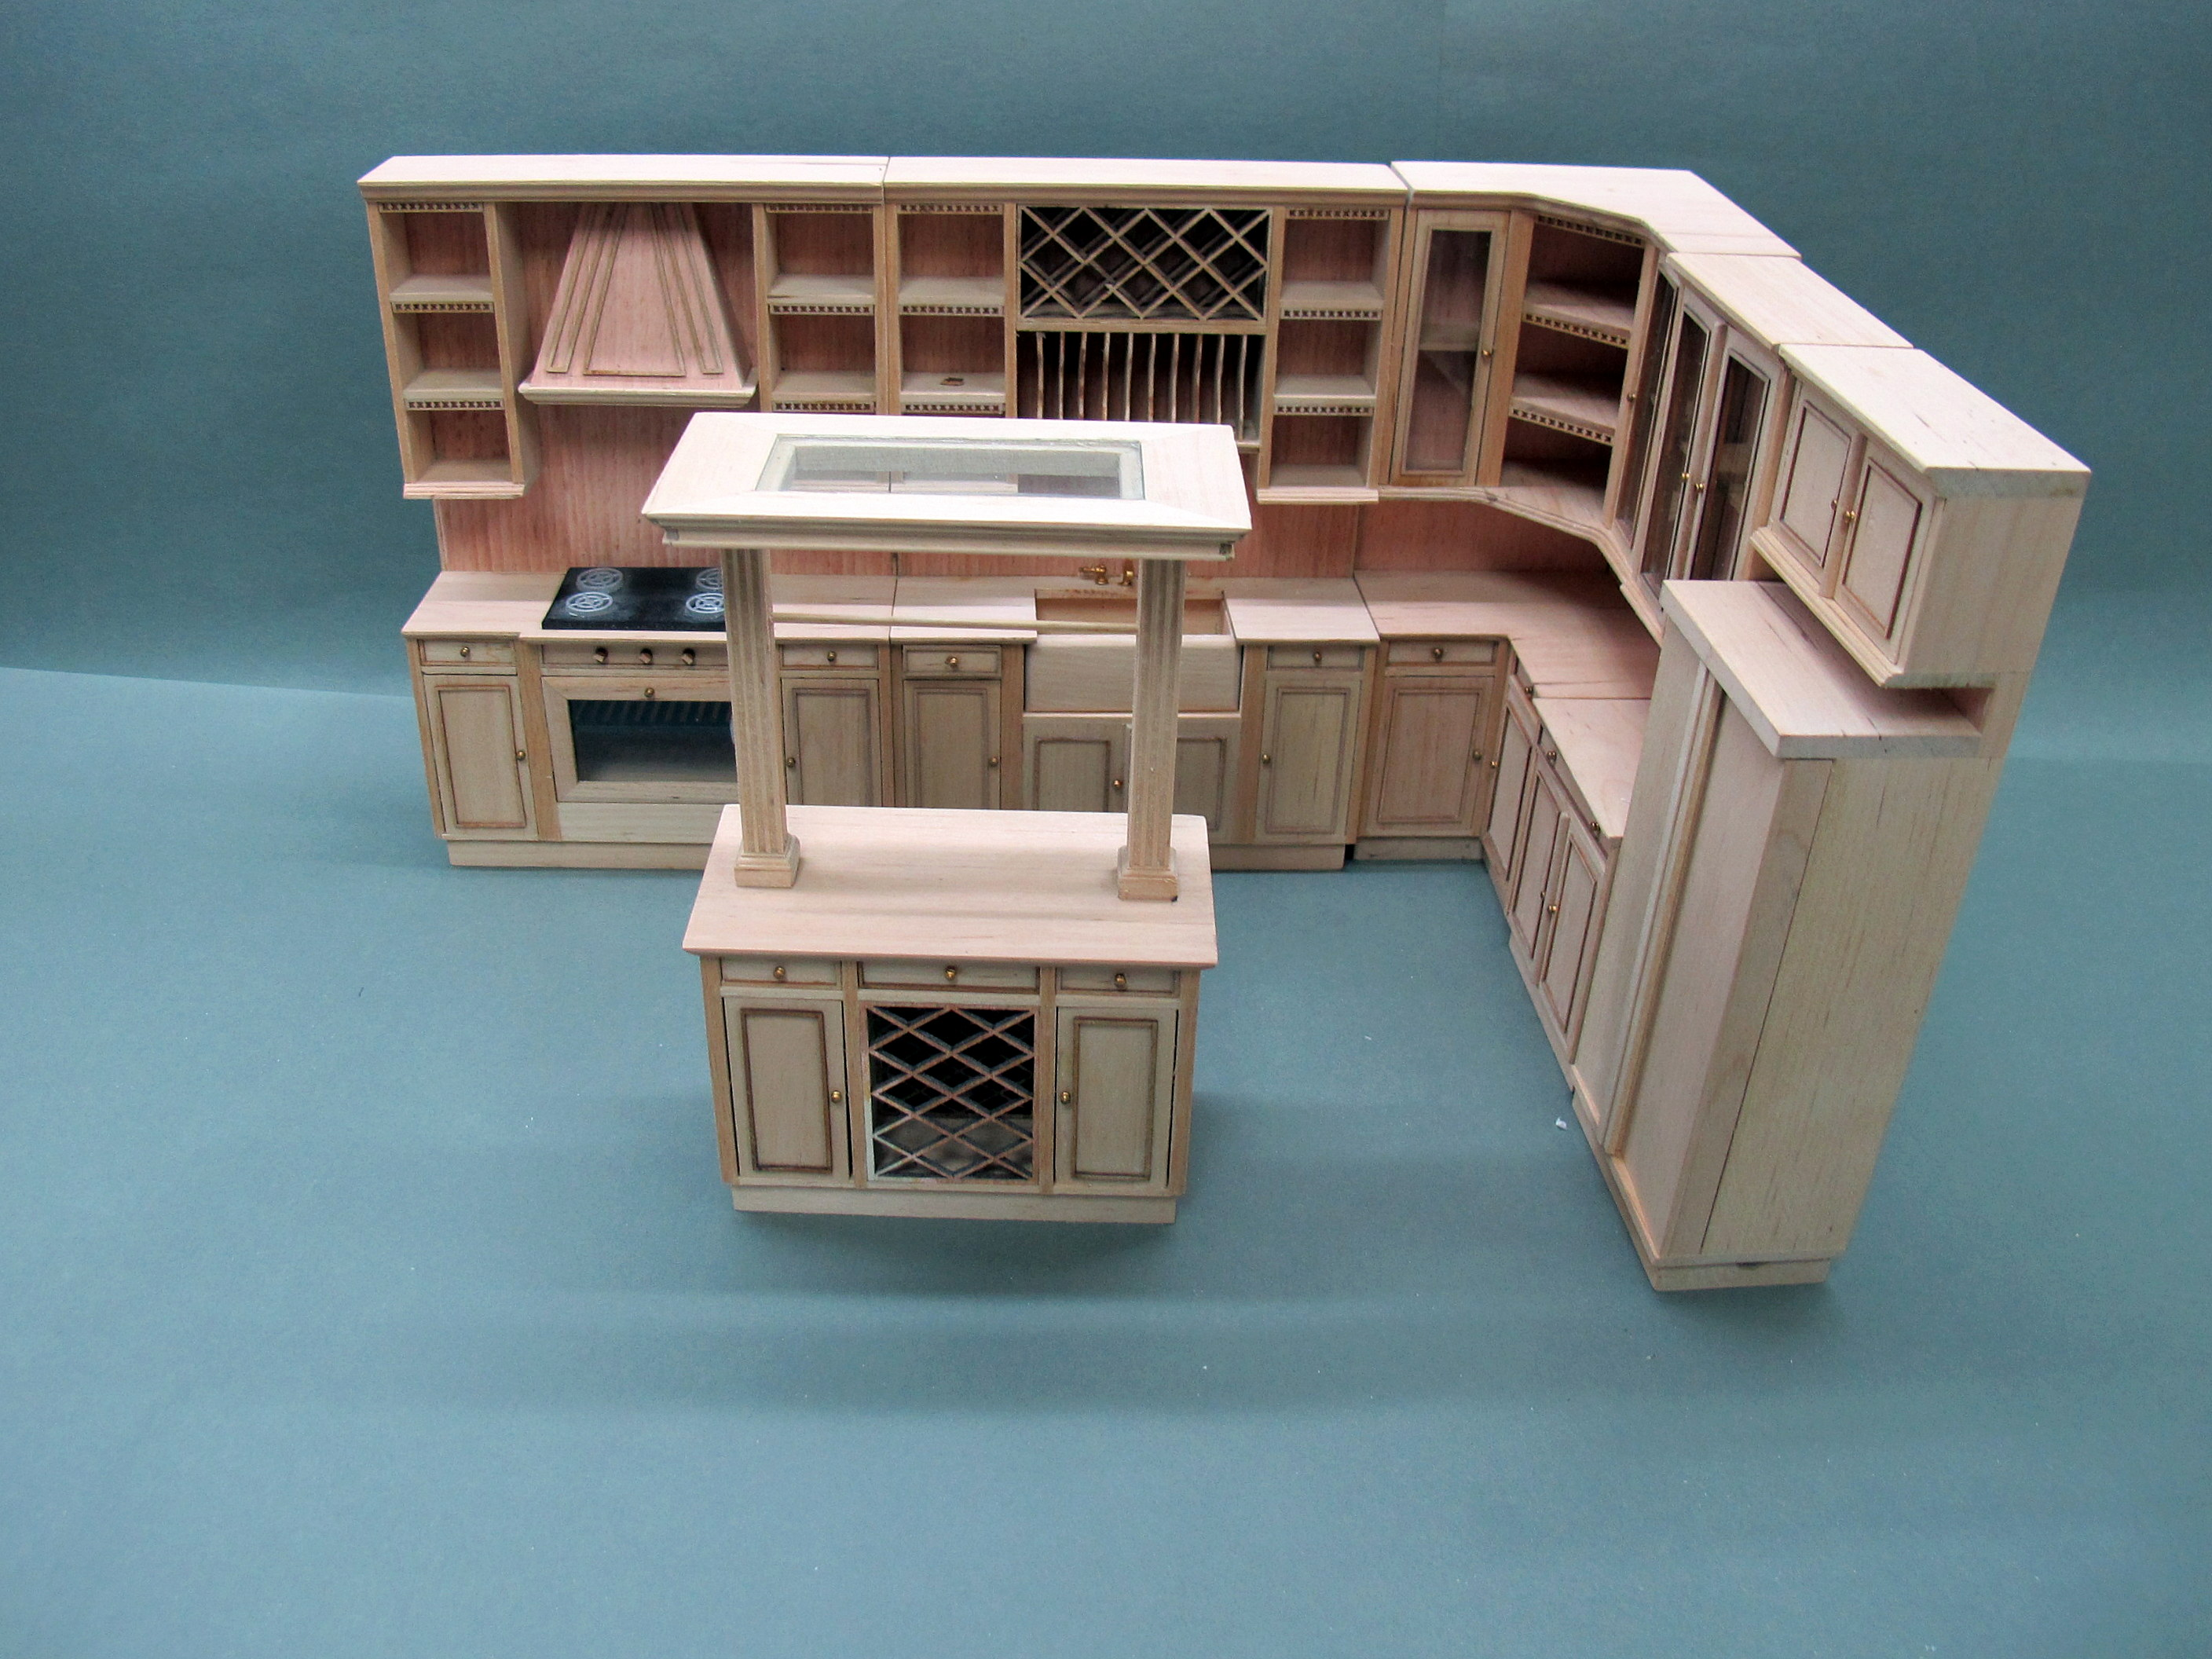 Miniature 1/12th Scale Doll House Kitchen [Unpainted]